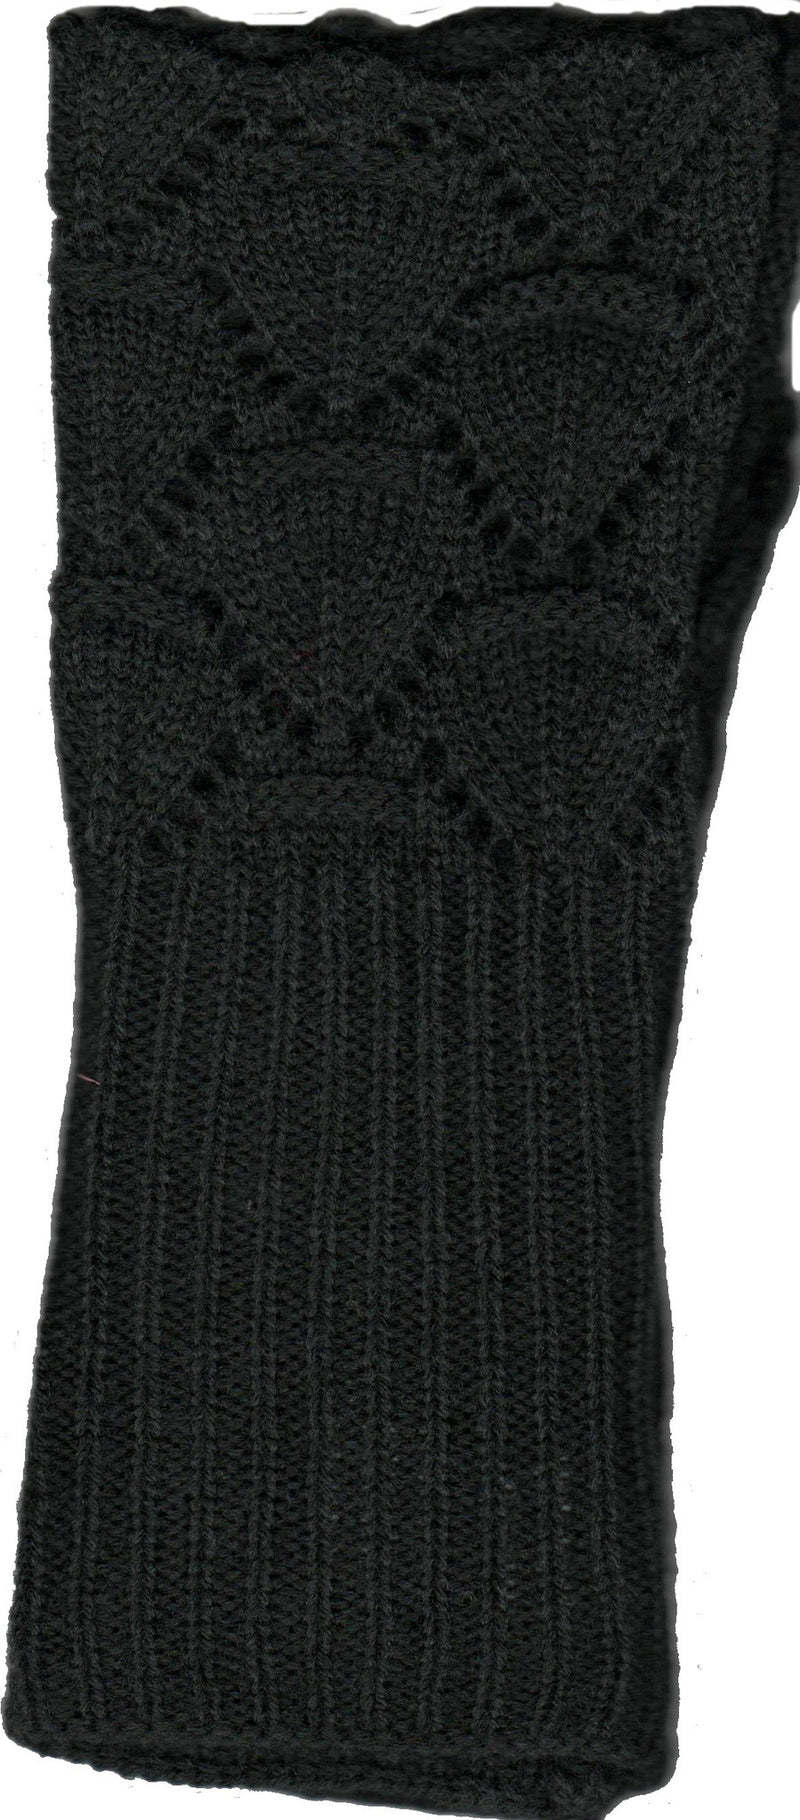 Lauer Glove Lace and Scallop Edge Design in Black